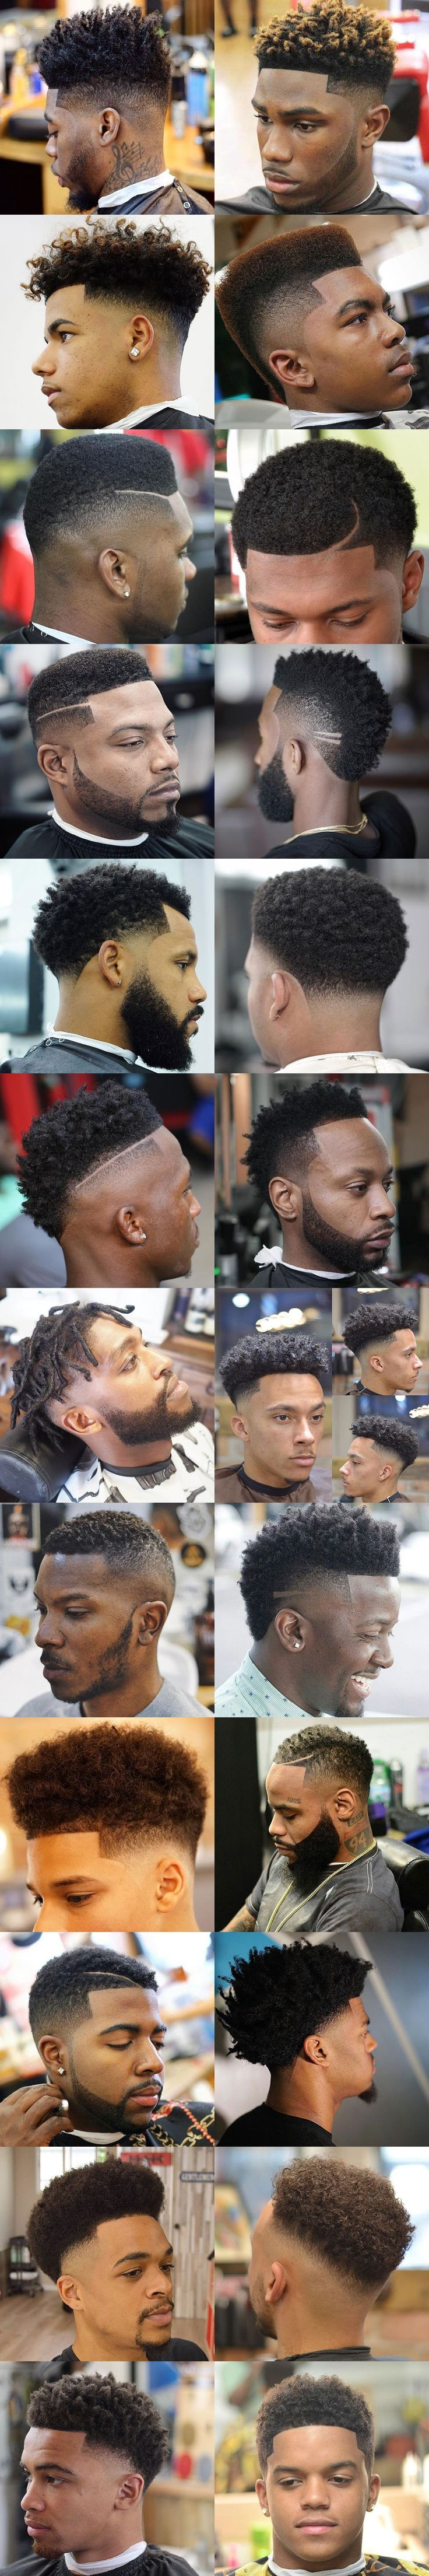 Fade Haircuts For Black Men – Best Types of Fades For Black Guys